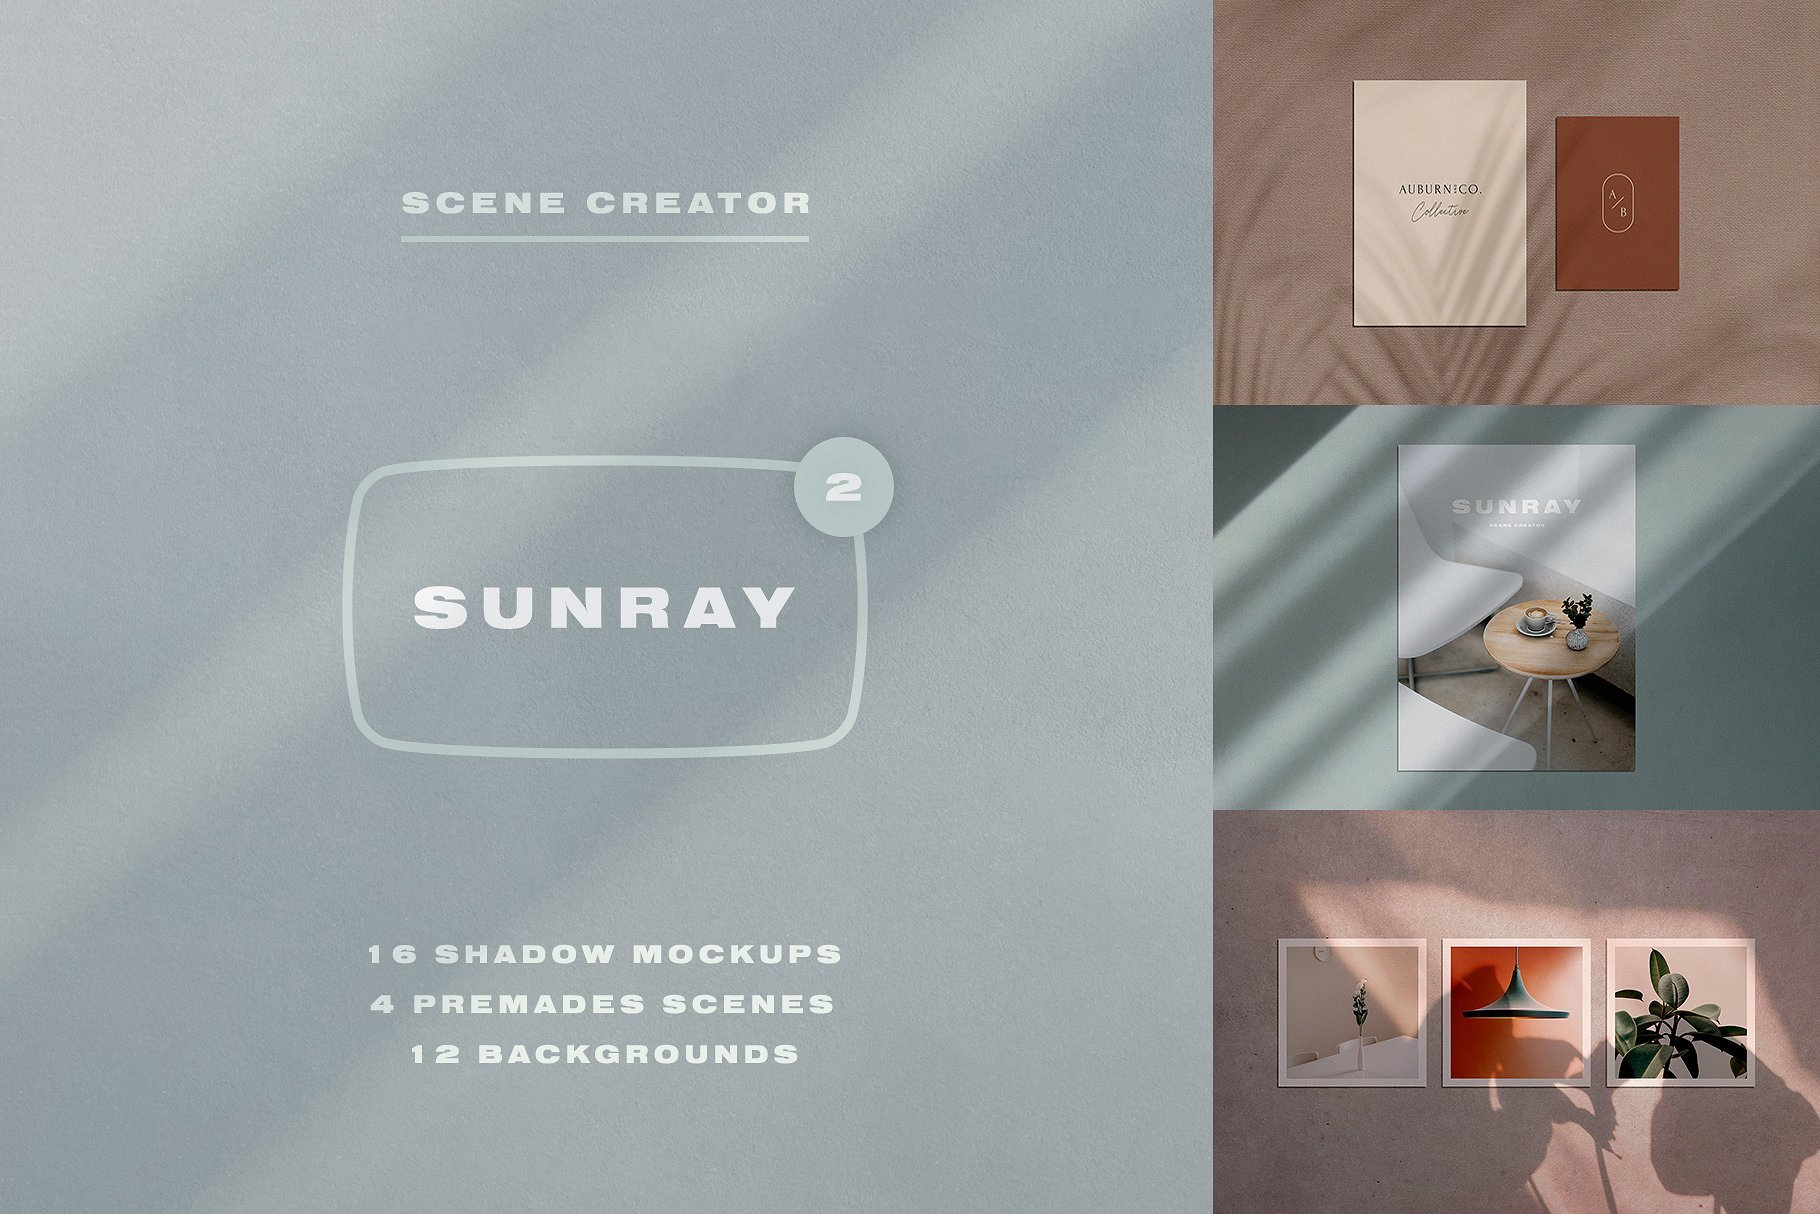 Sunray 2 - Stationery Shadow Mockups - Design Cuts